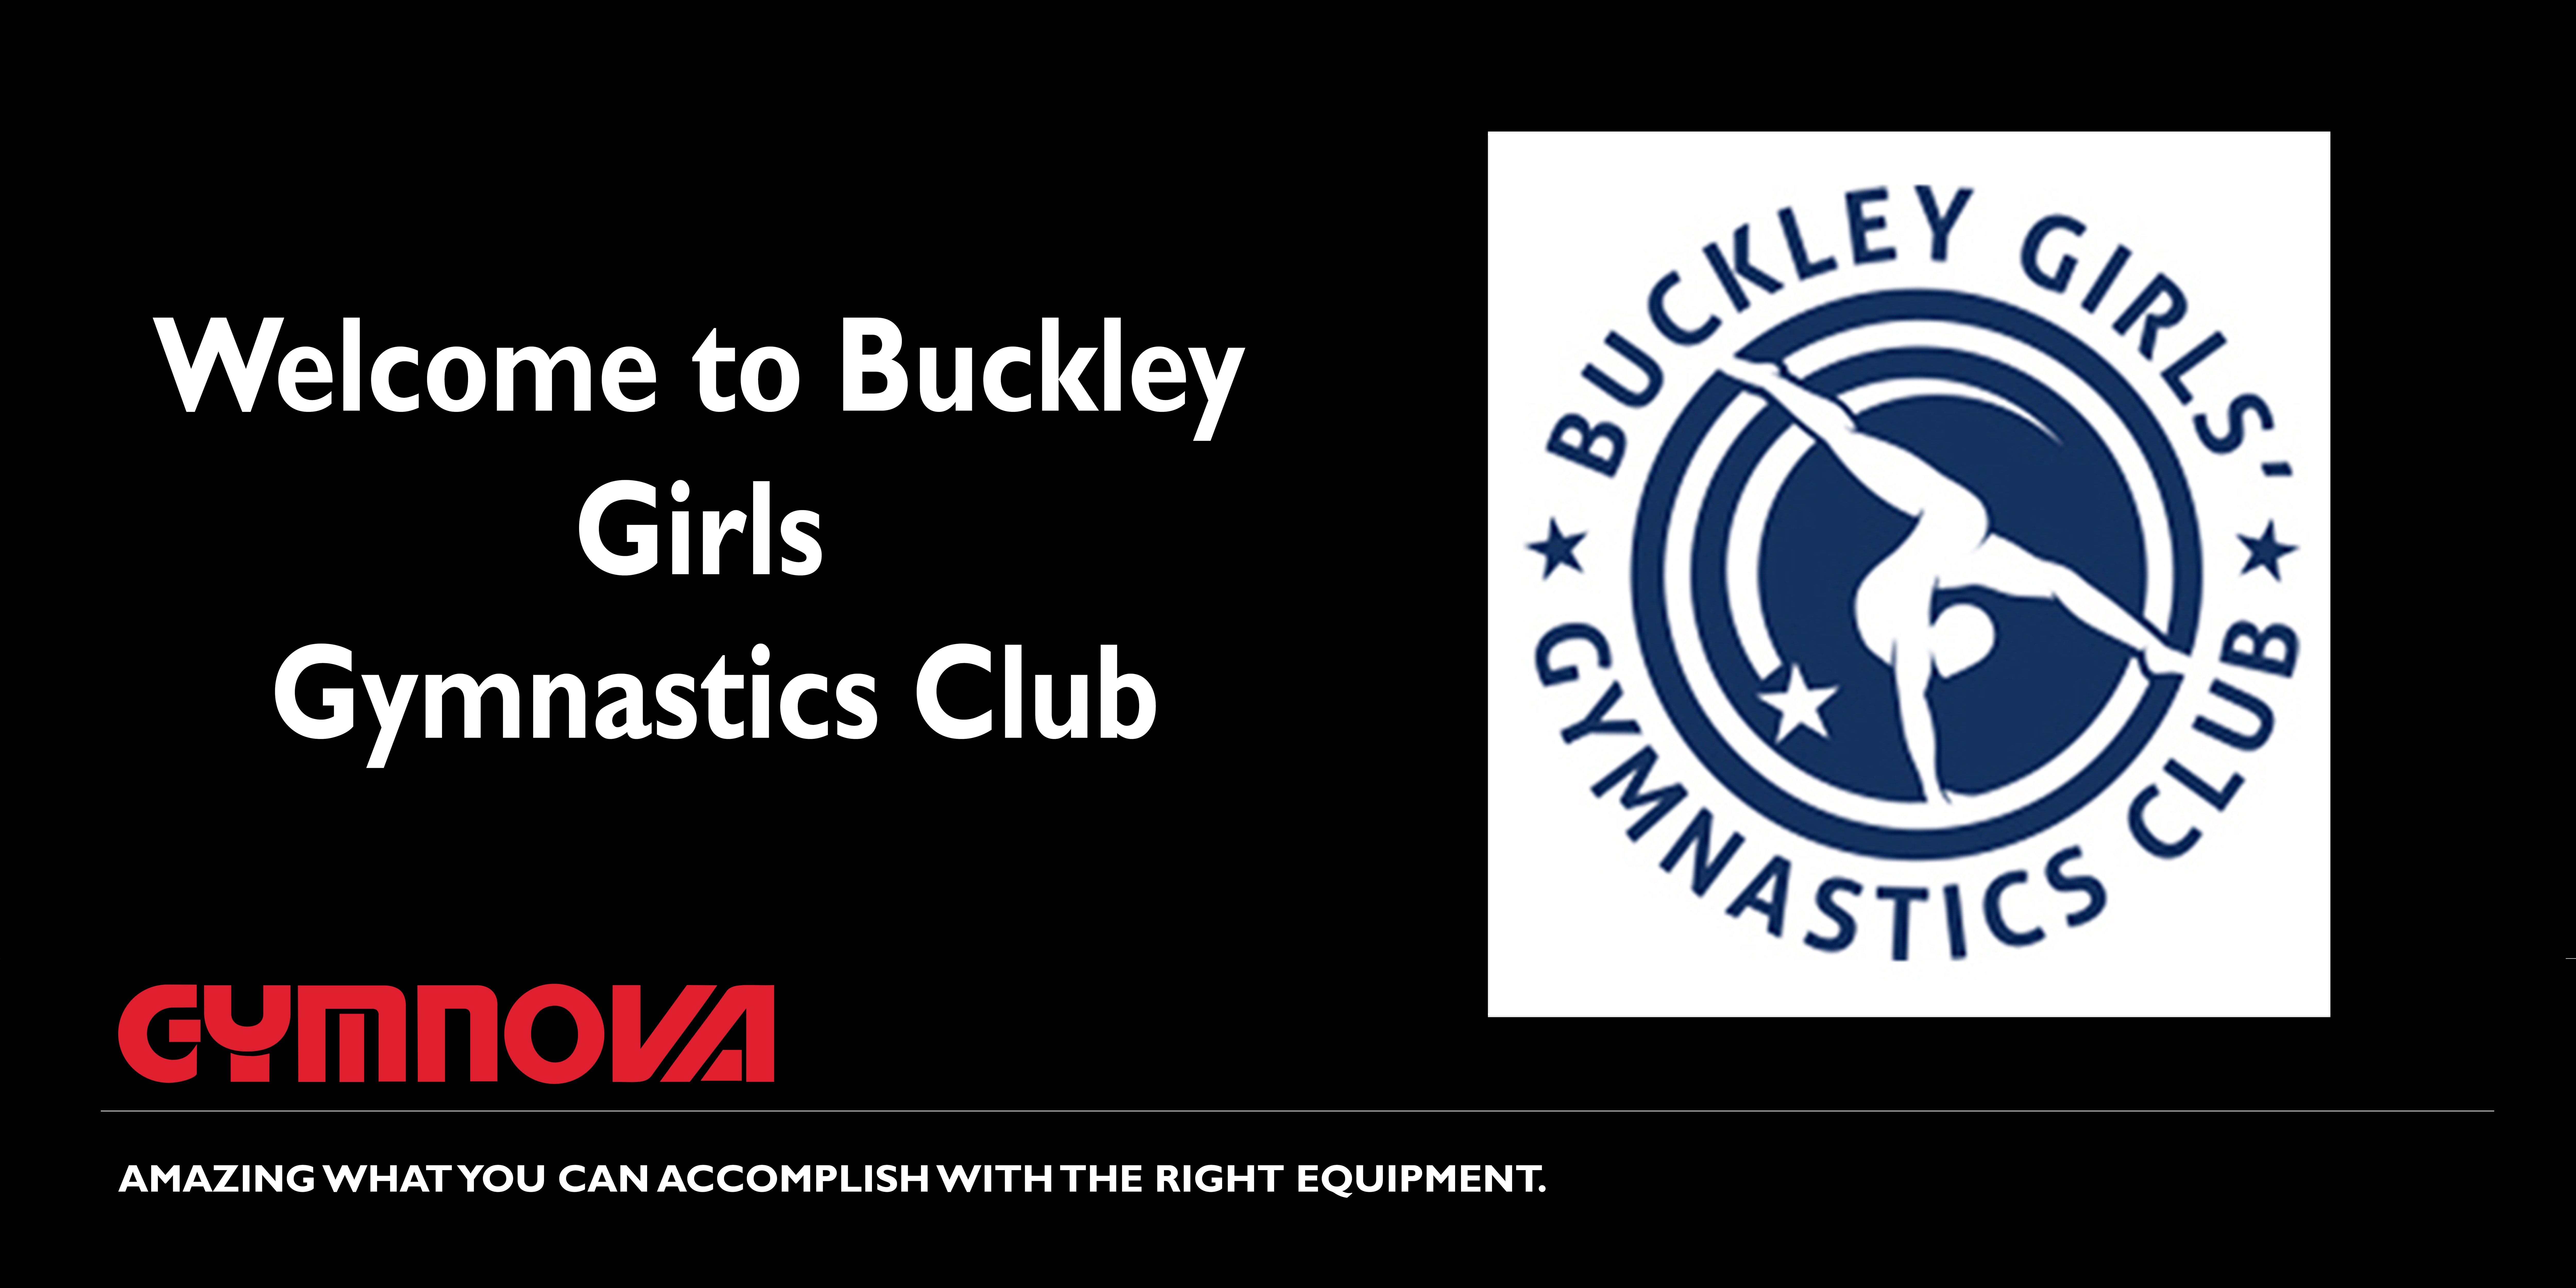 Buckley Girls Gymnastics Club